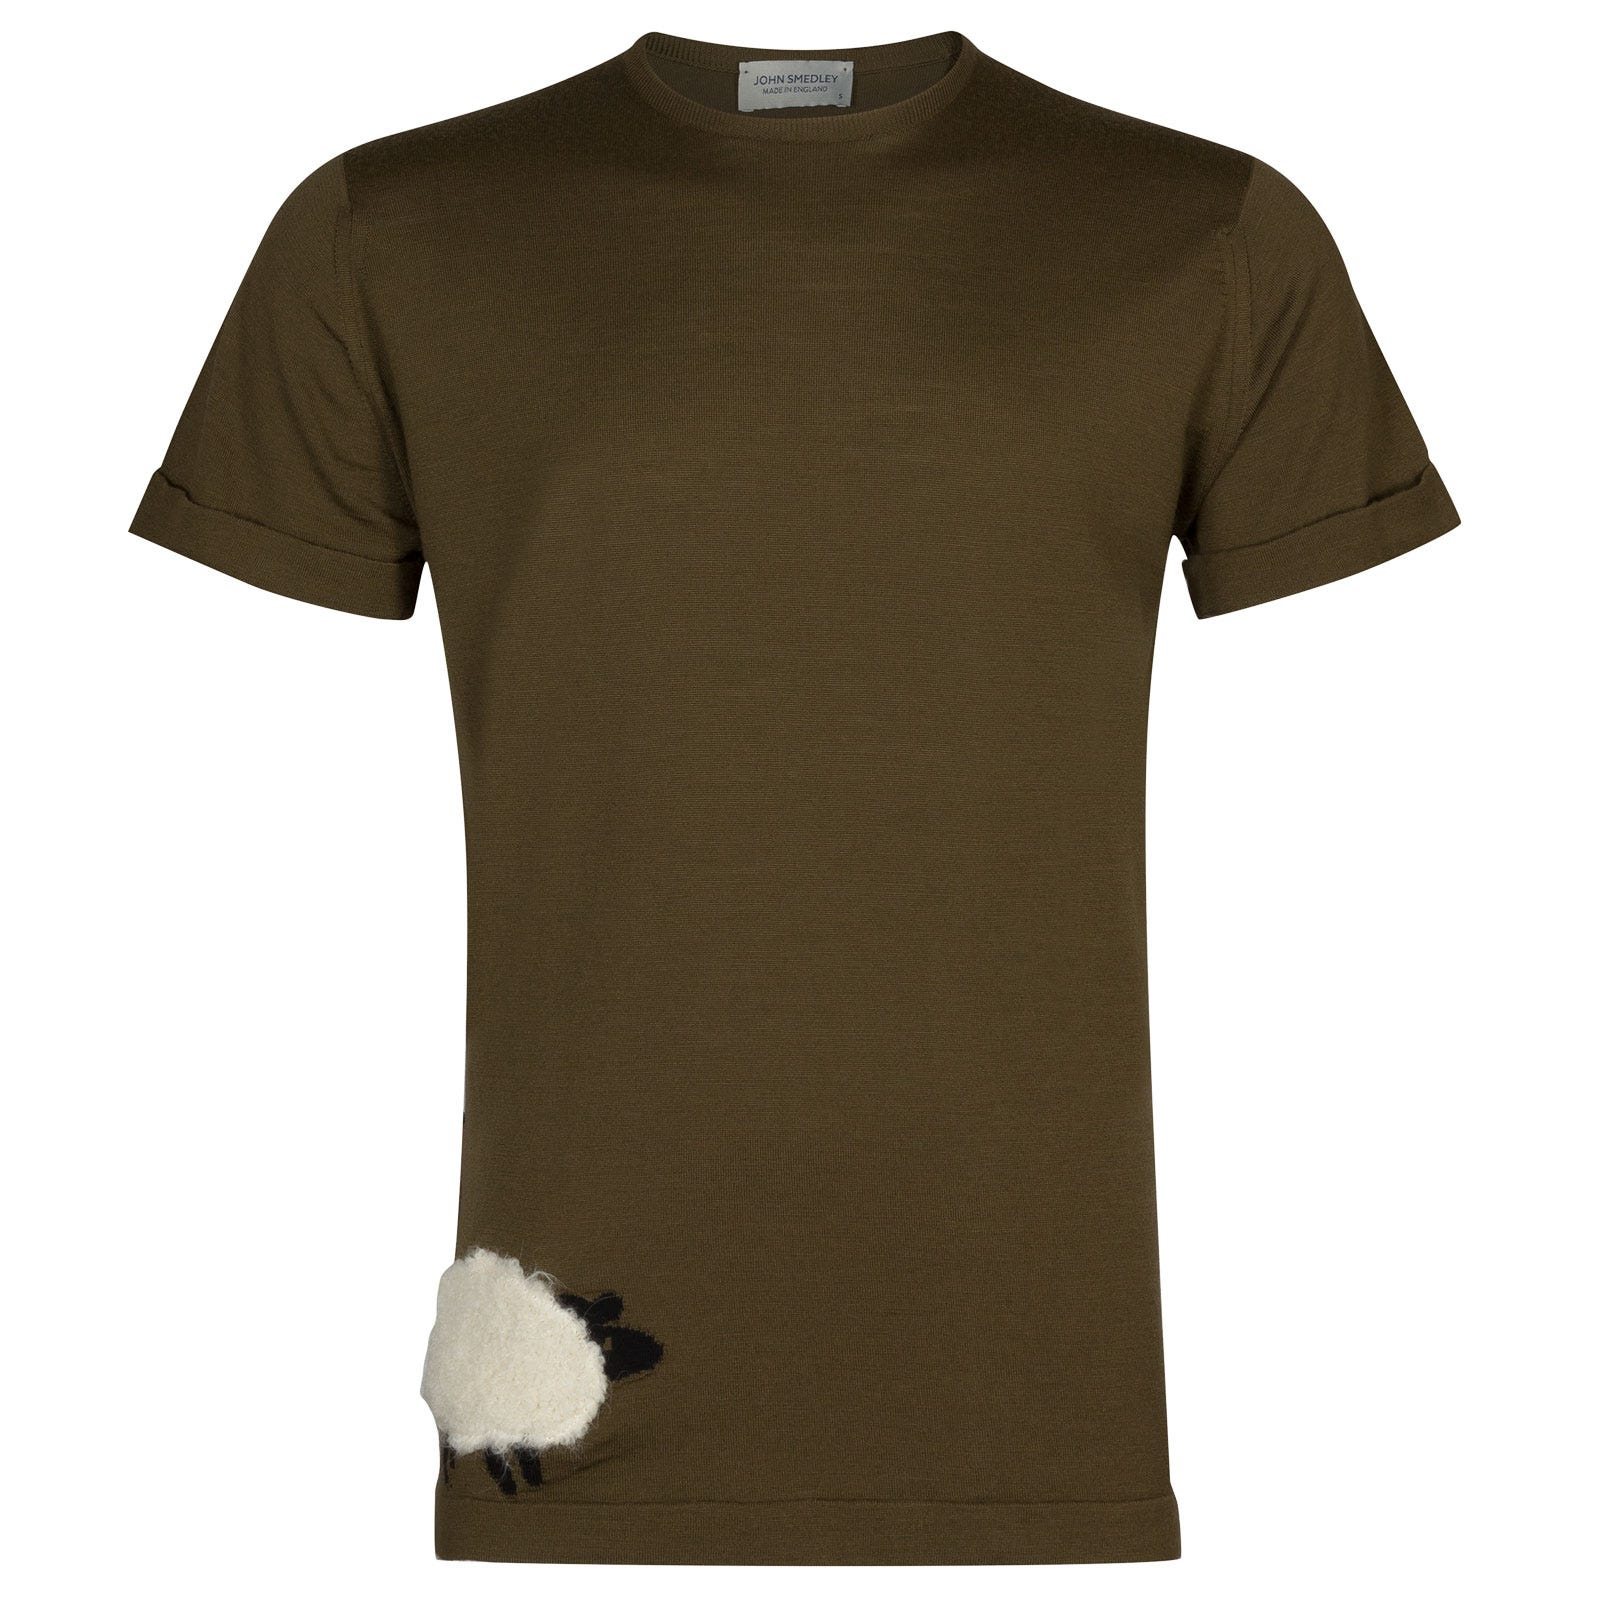 John Smedley bleat Merino Wool T-shirt in Kielder Green/Snow White-L